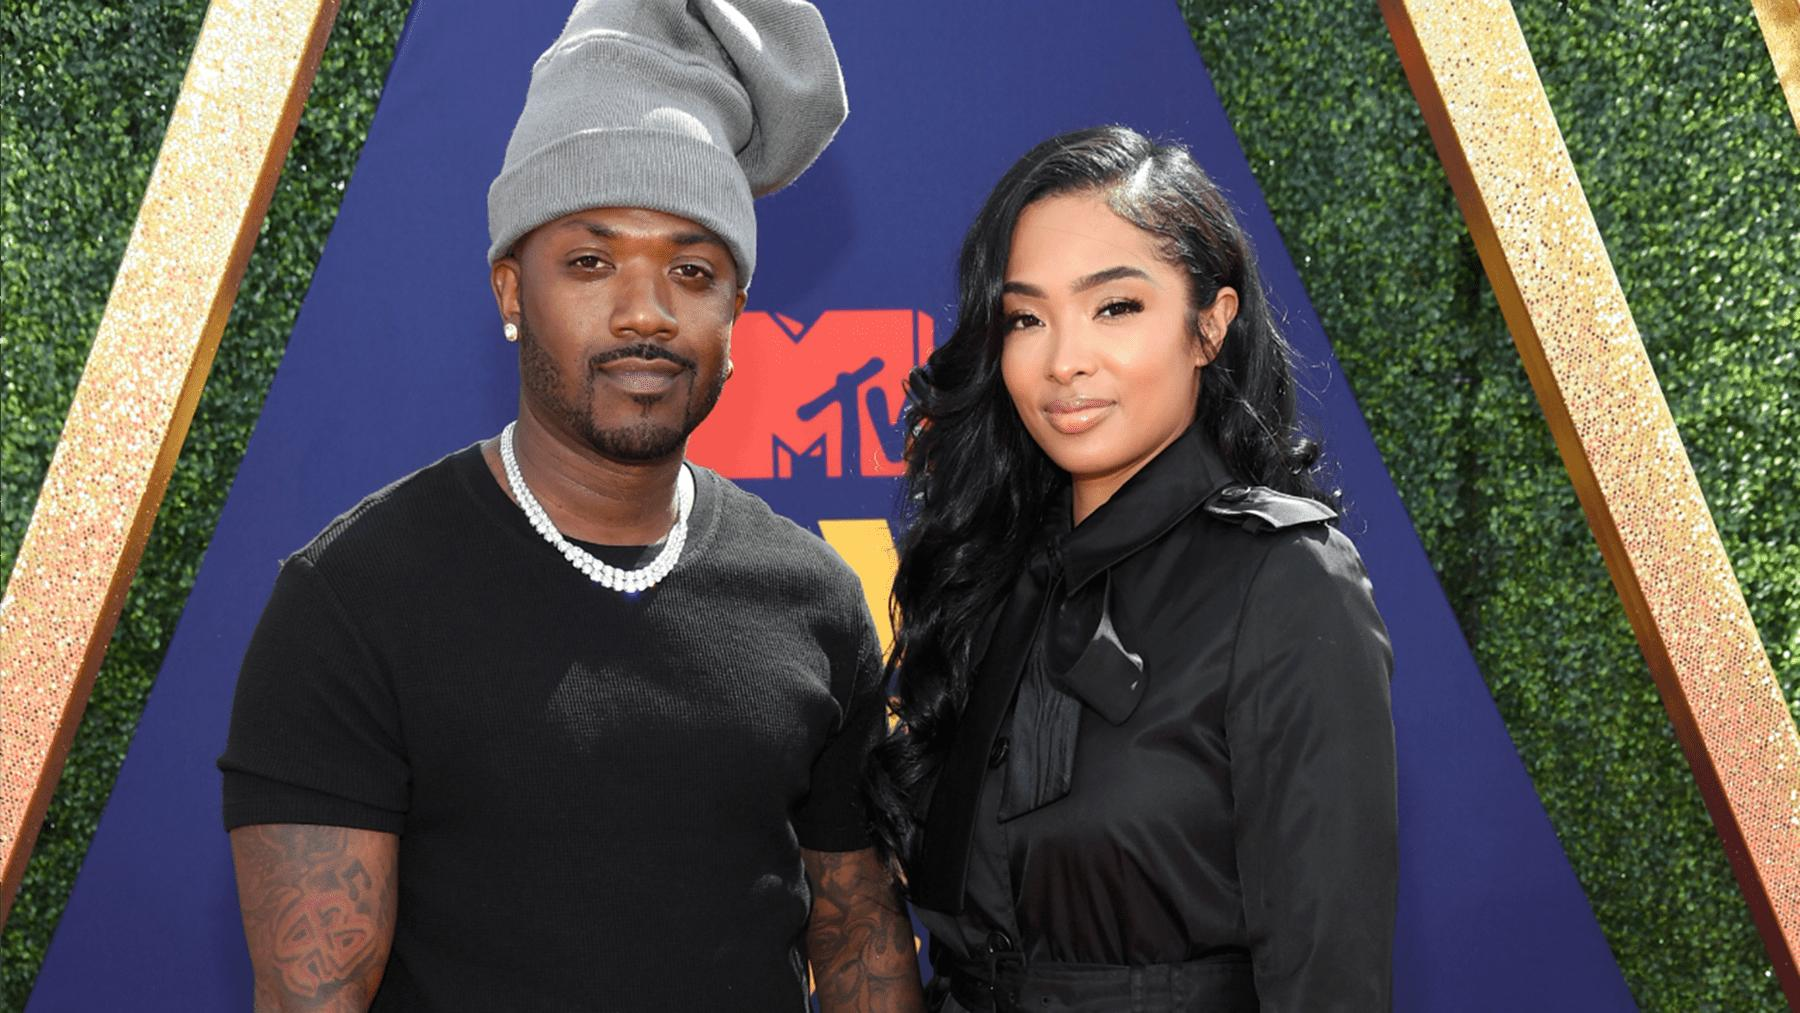 Ray J's Mother, Sonja B. Norwood, Picks A Side In His Fight With Wife Princess Love Who Is 8 Months Pregnant